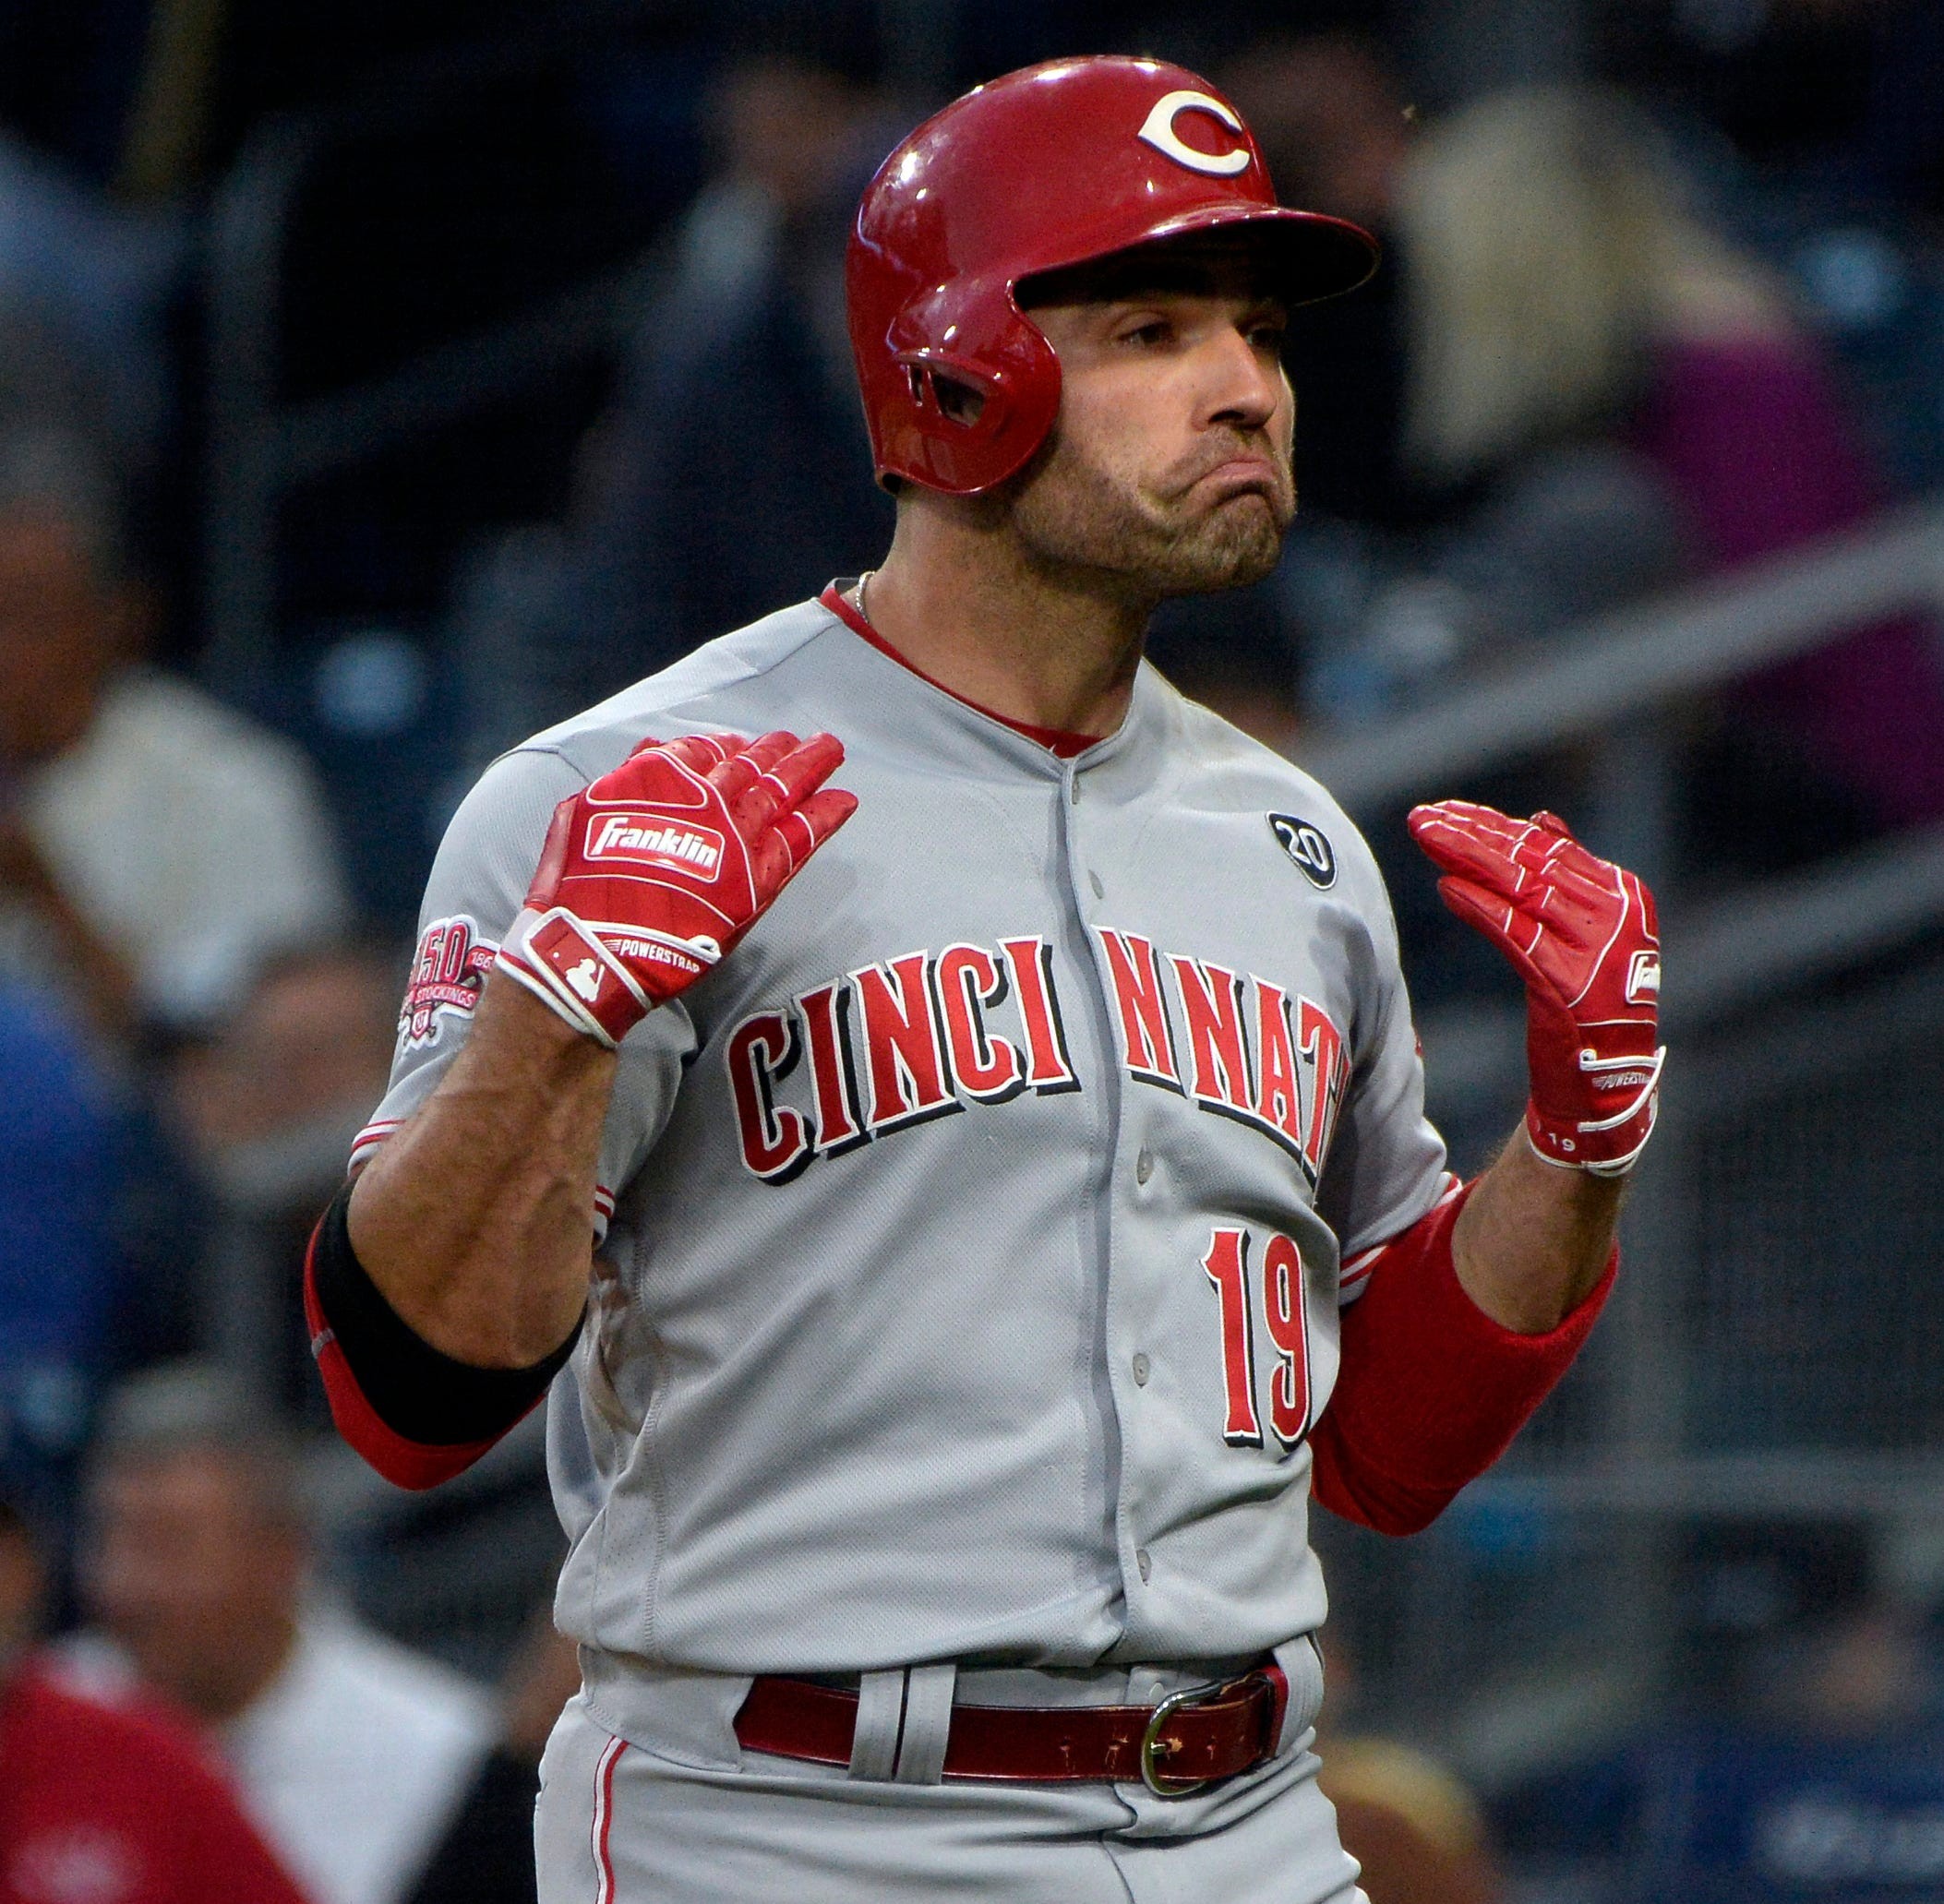 Joey Votto's leadoff home run sets tone for Cincinnati Reds in win over San Diego Padres